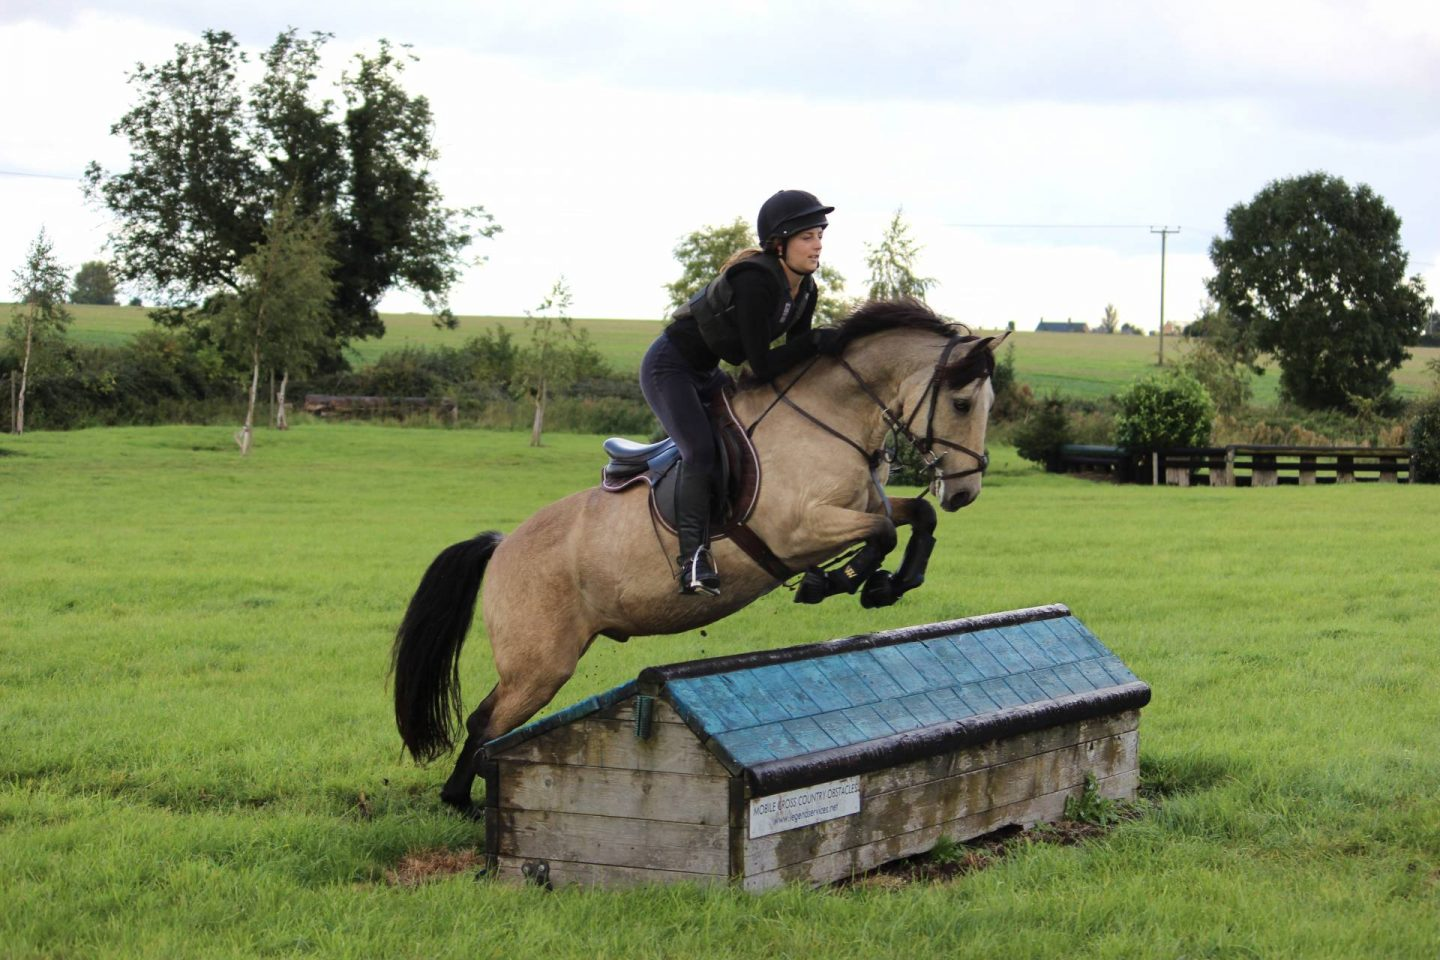 pony jumping over house on cross country course